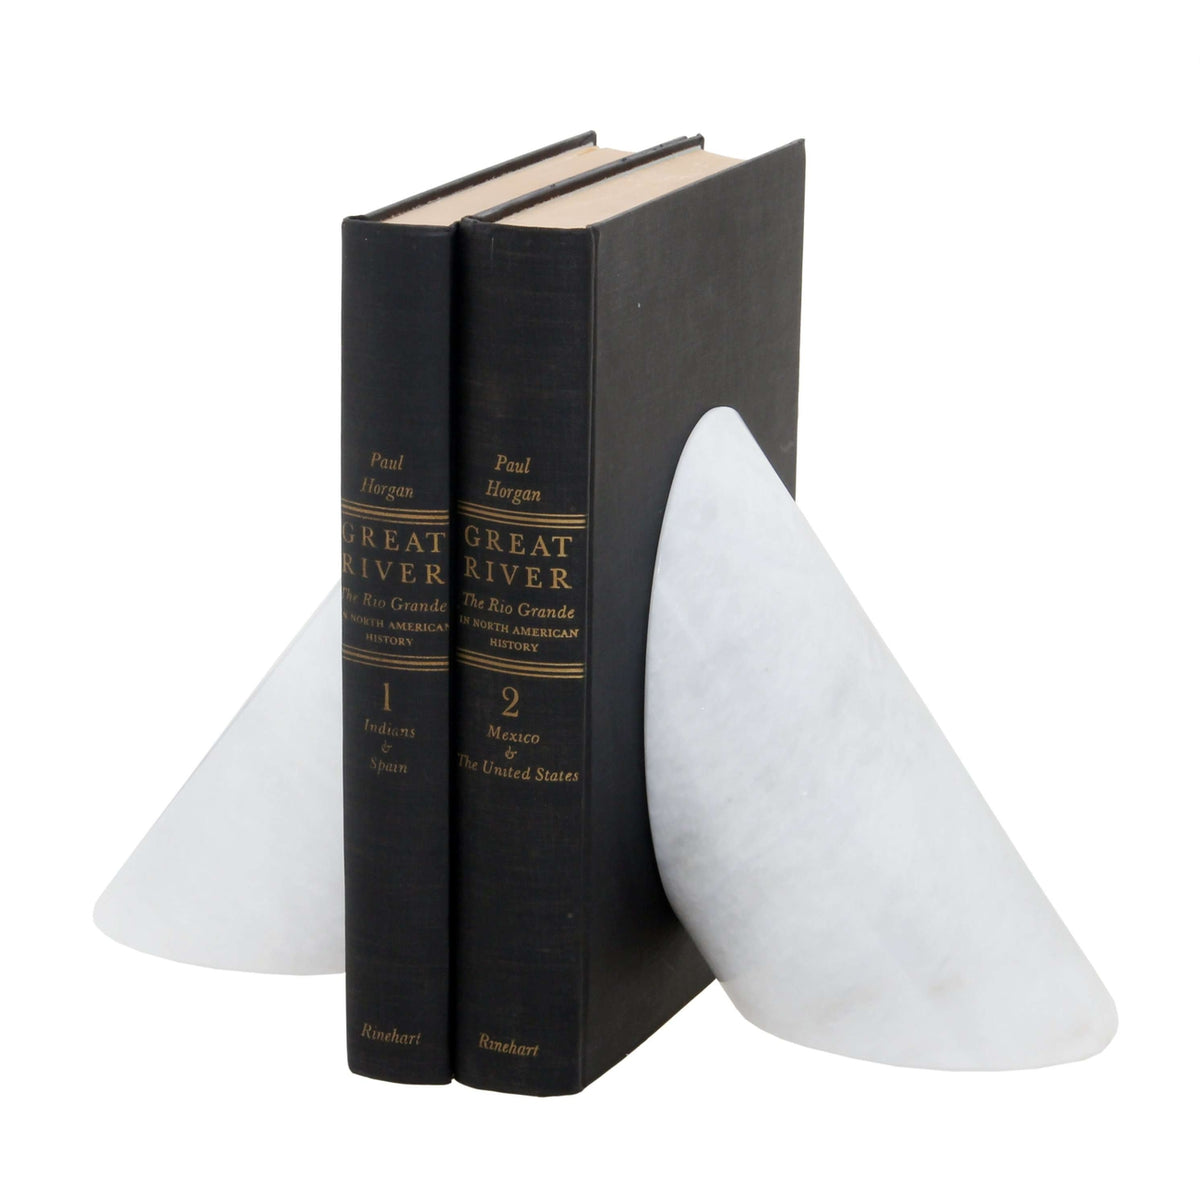 Coronet Collection Pearl White Marble Bookends Marblecrafters Mc Be35 Pw France Son